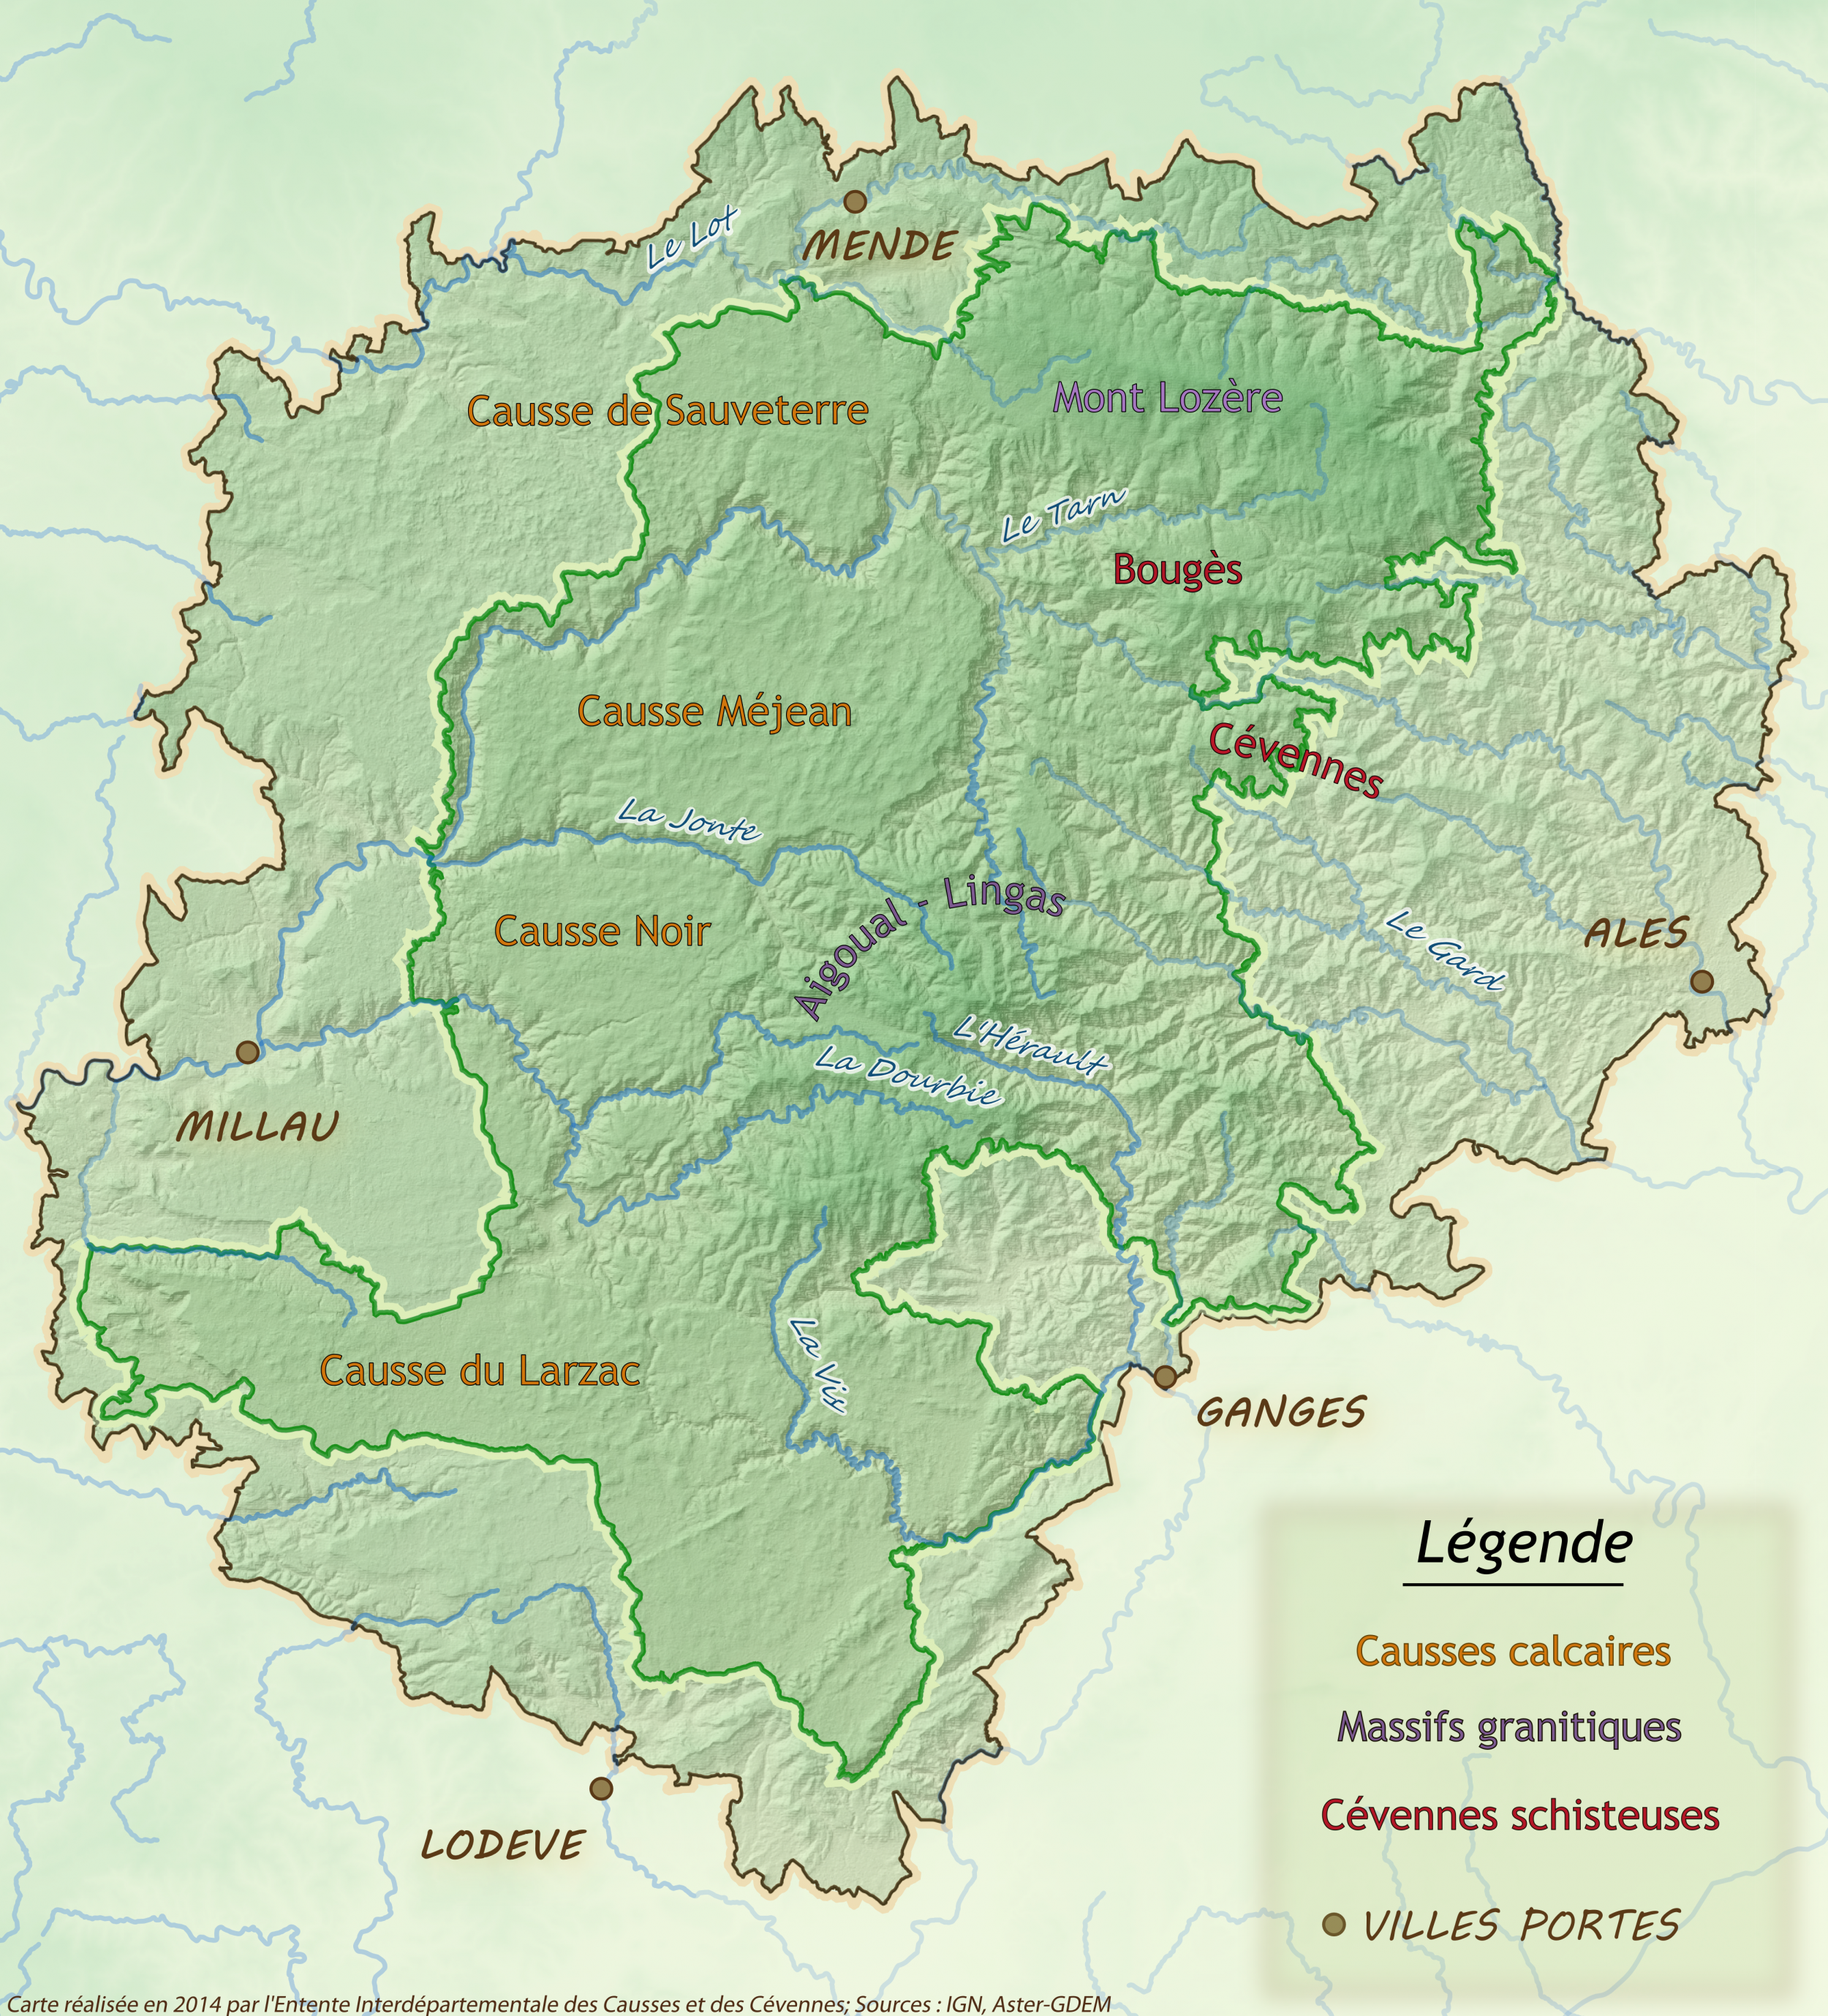 Map of the territory | Causses and Cévennes